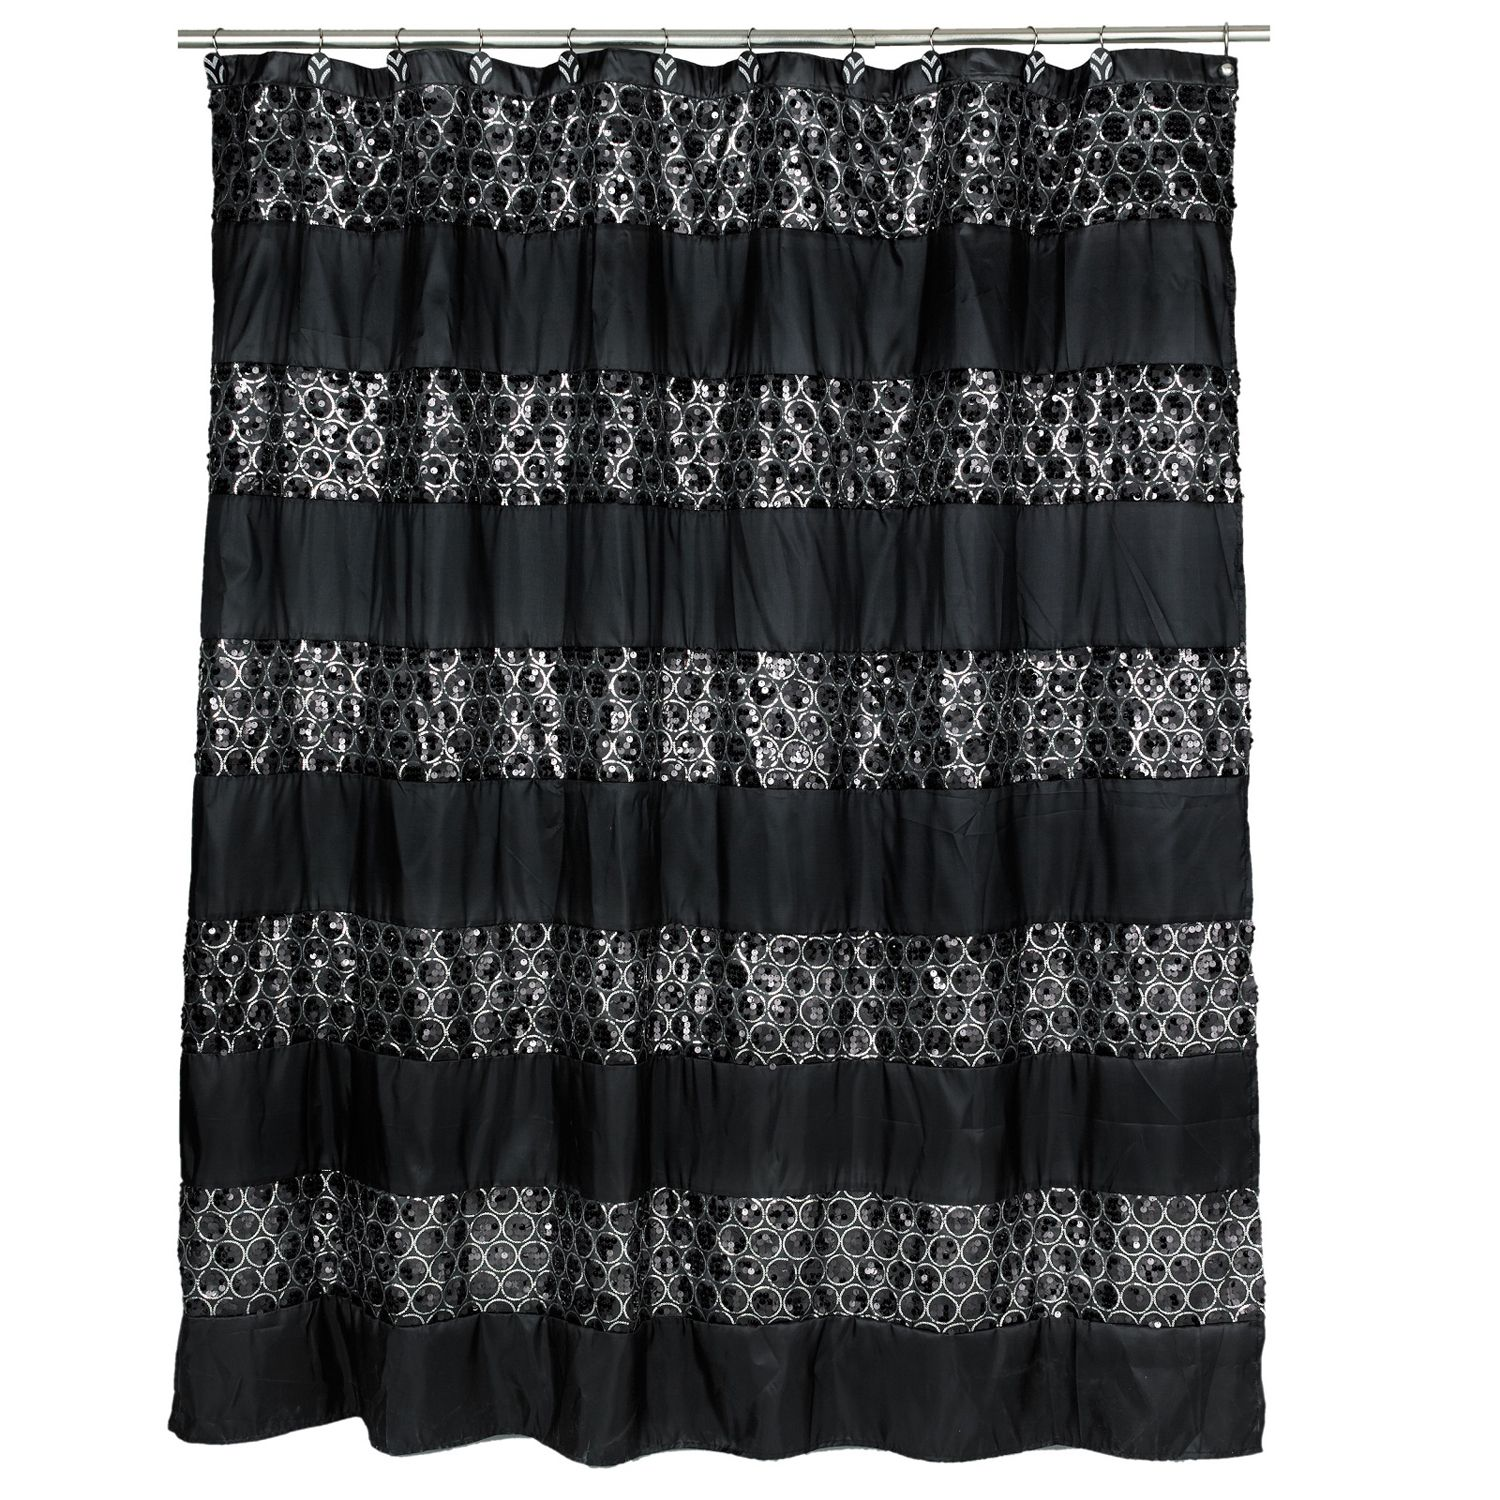 Sinatra Shower Curtain Collection